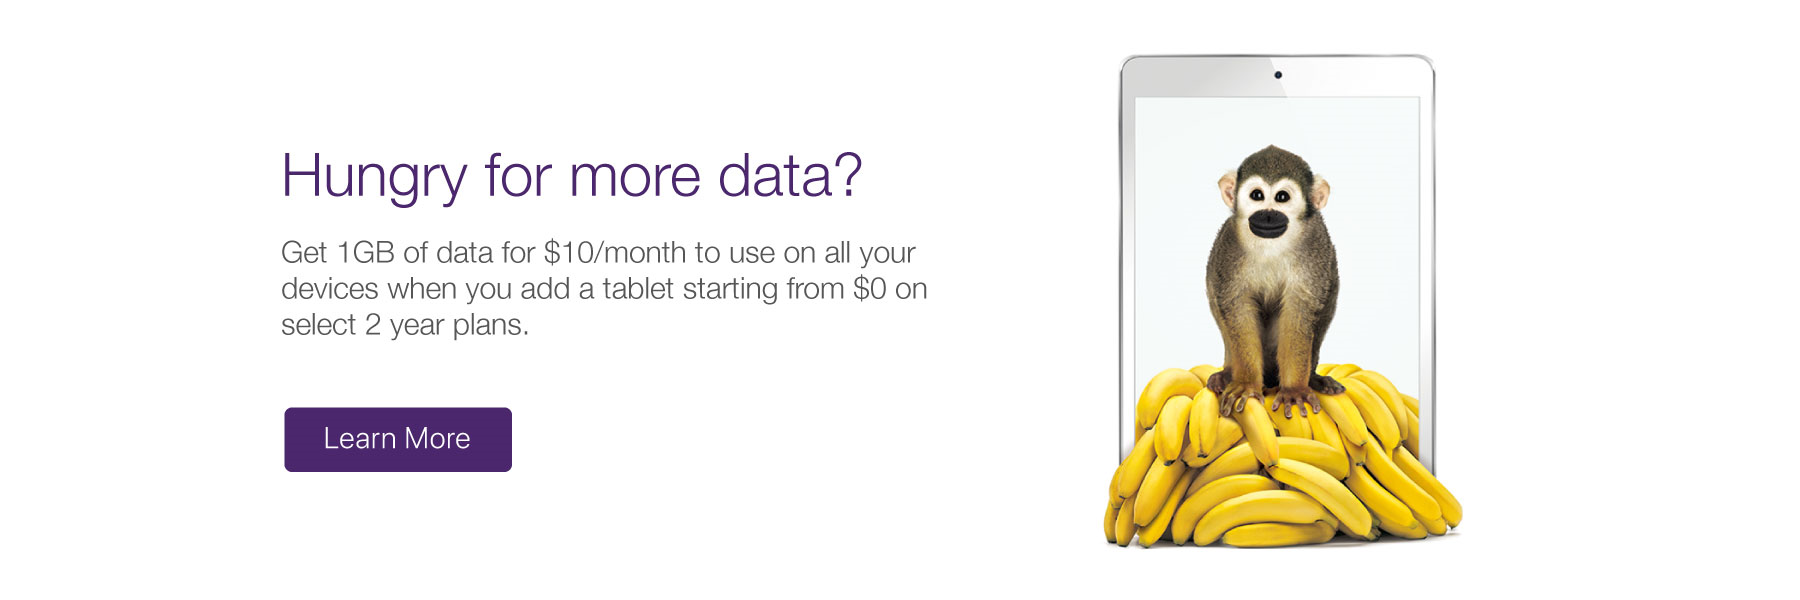 Get 1 GB of Tablet Data for $10/mth